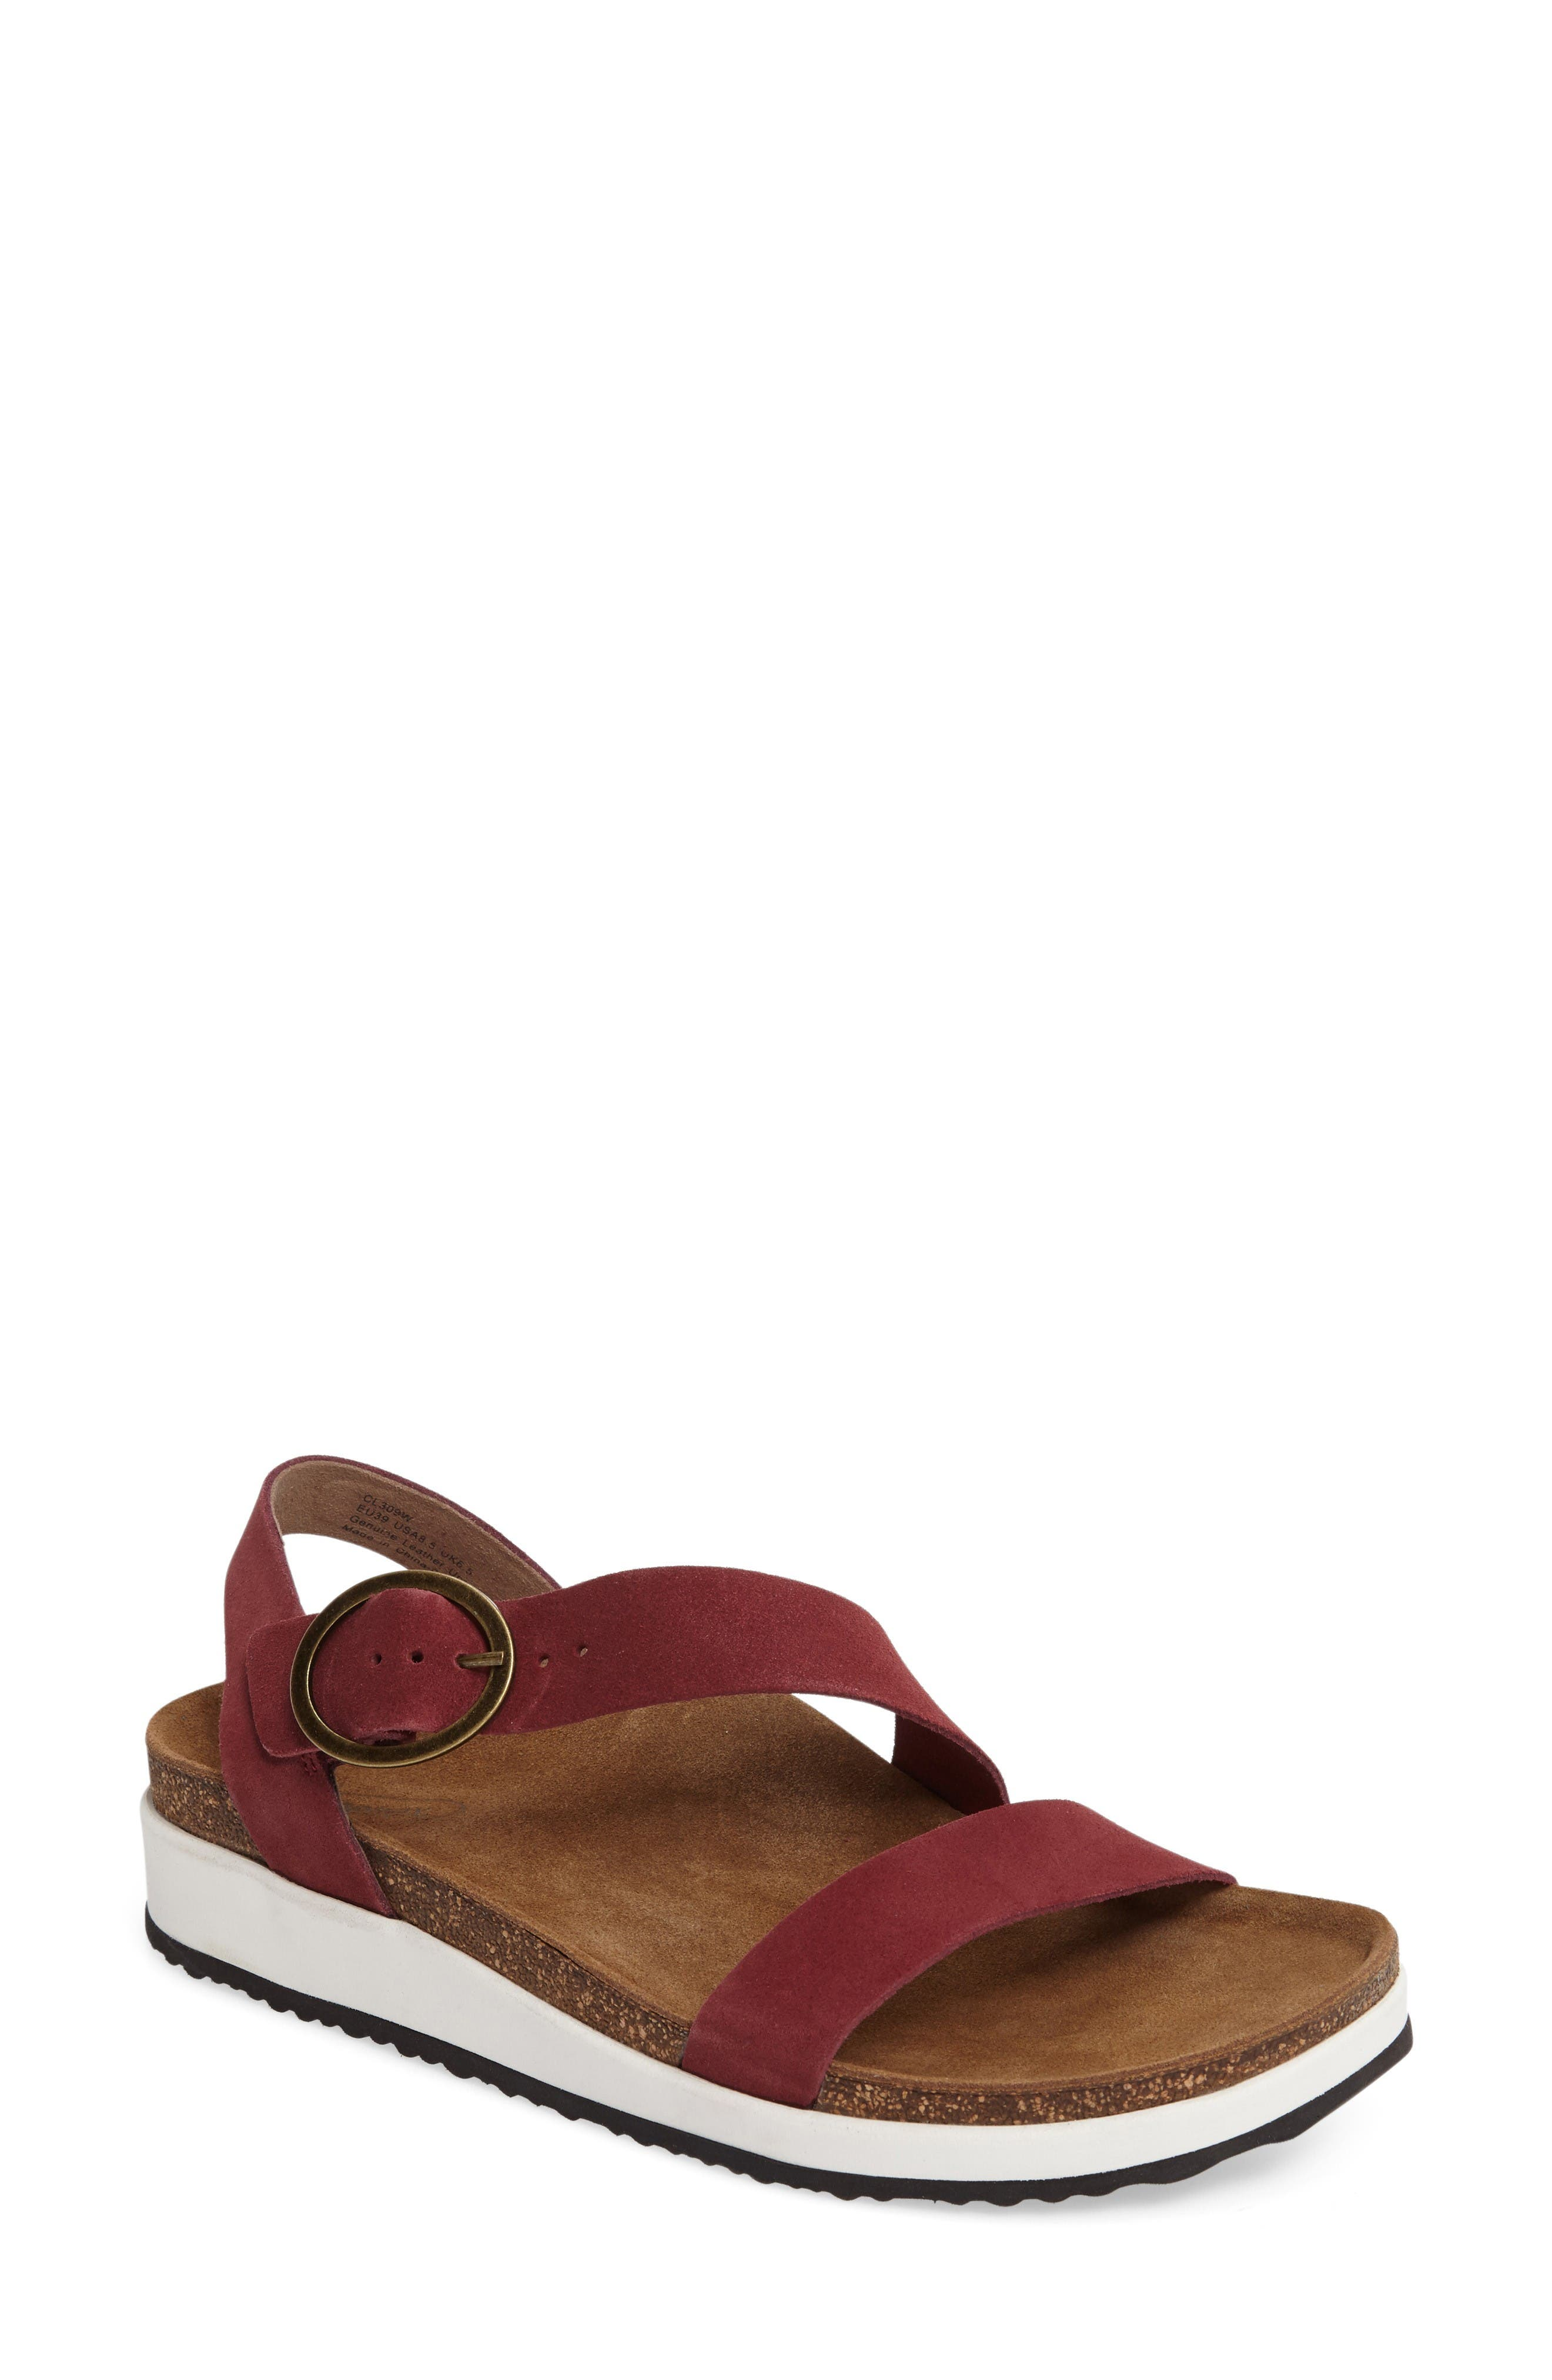 Adrianna Sandal,                         Main,                         color, Maroon Suede